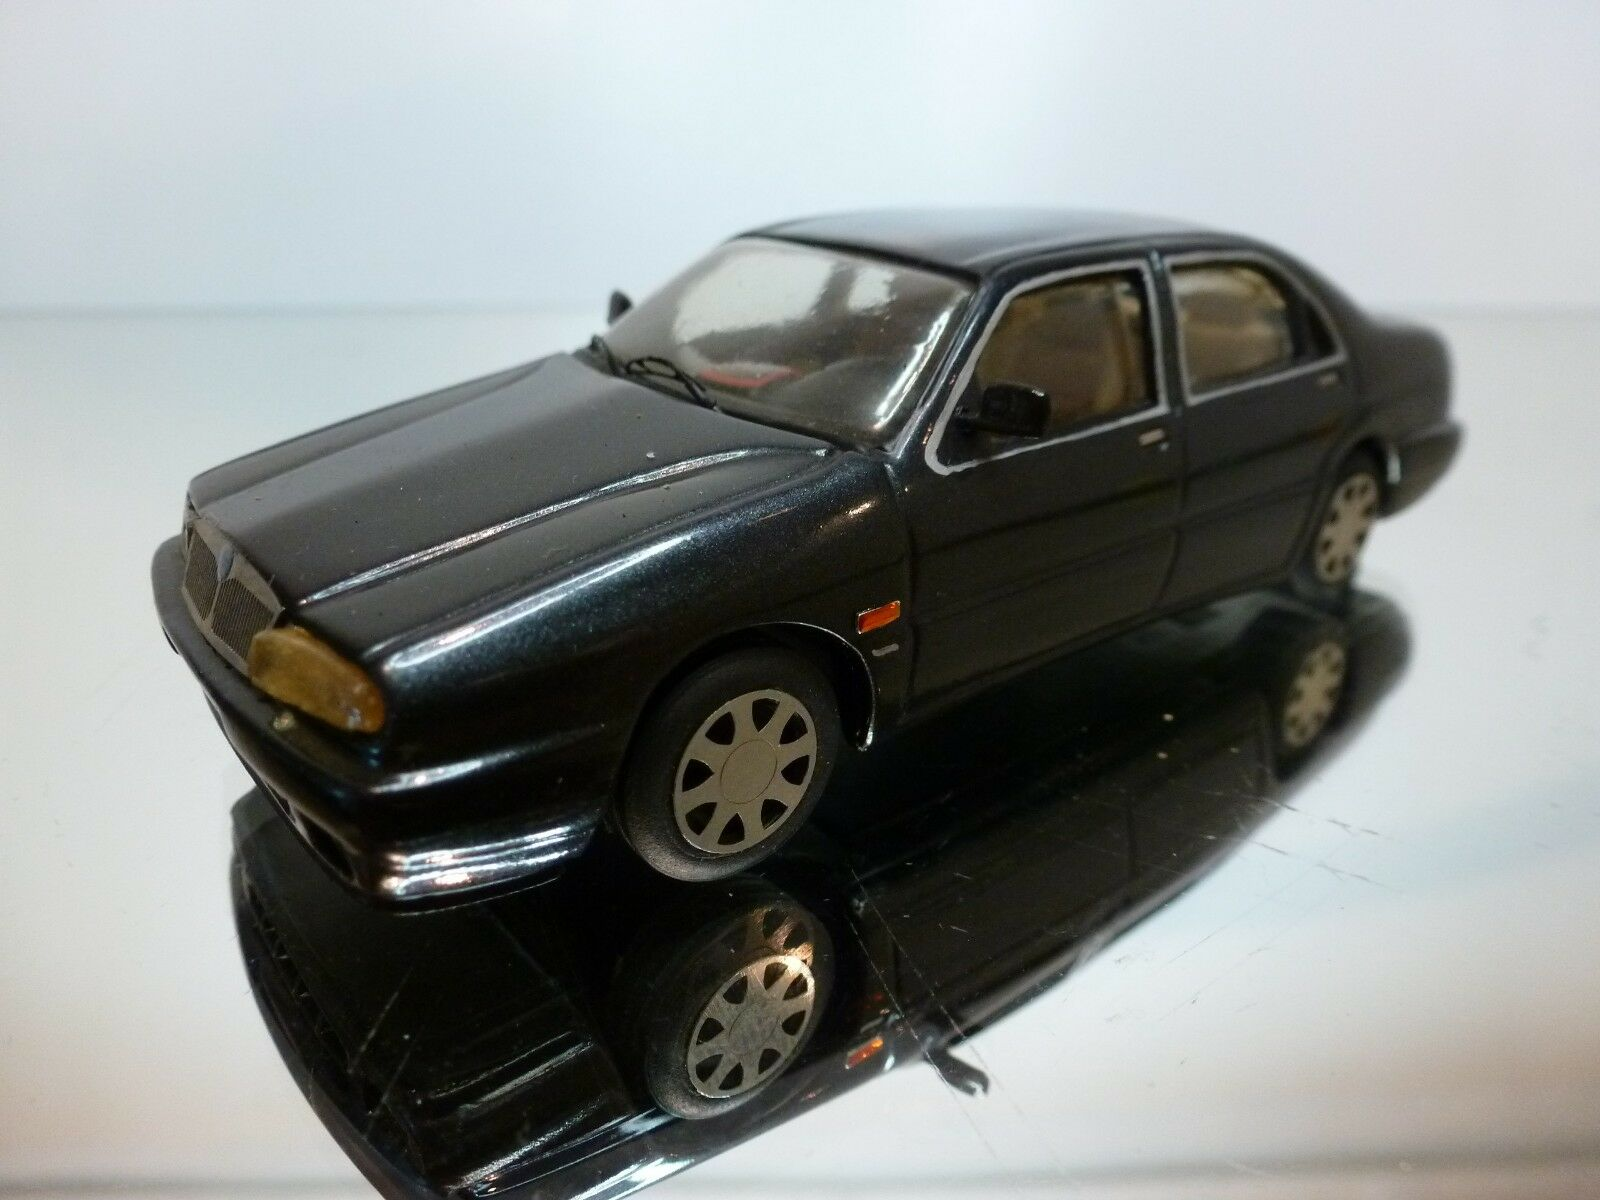 PB MODELS 43 LANCIA KAPPA 1997 - ANTHRACITE 1 43 - EXCELLENT CONDITION - 13 9